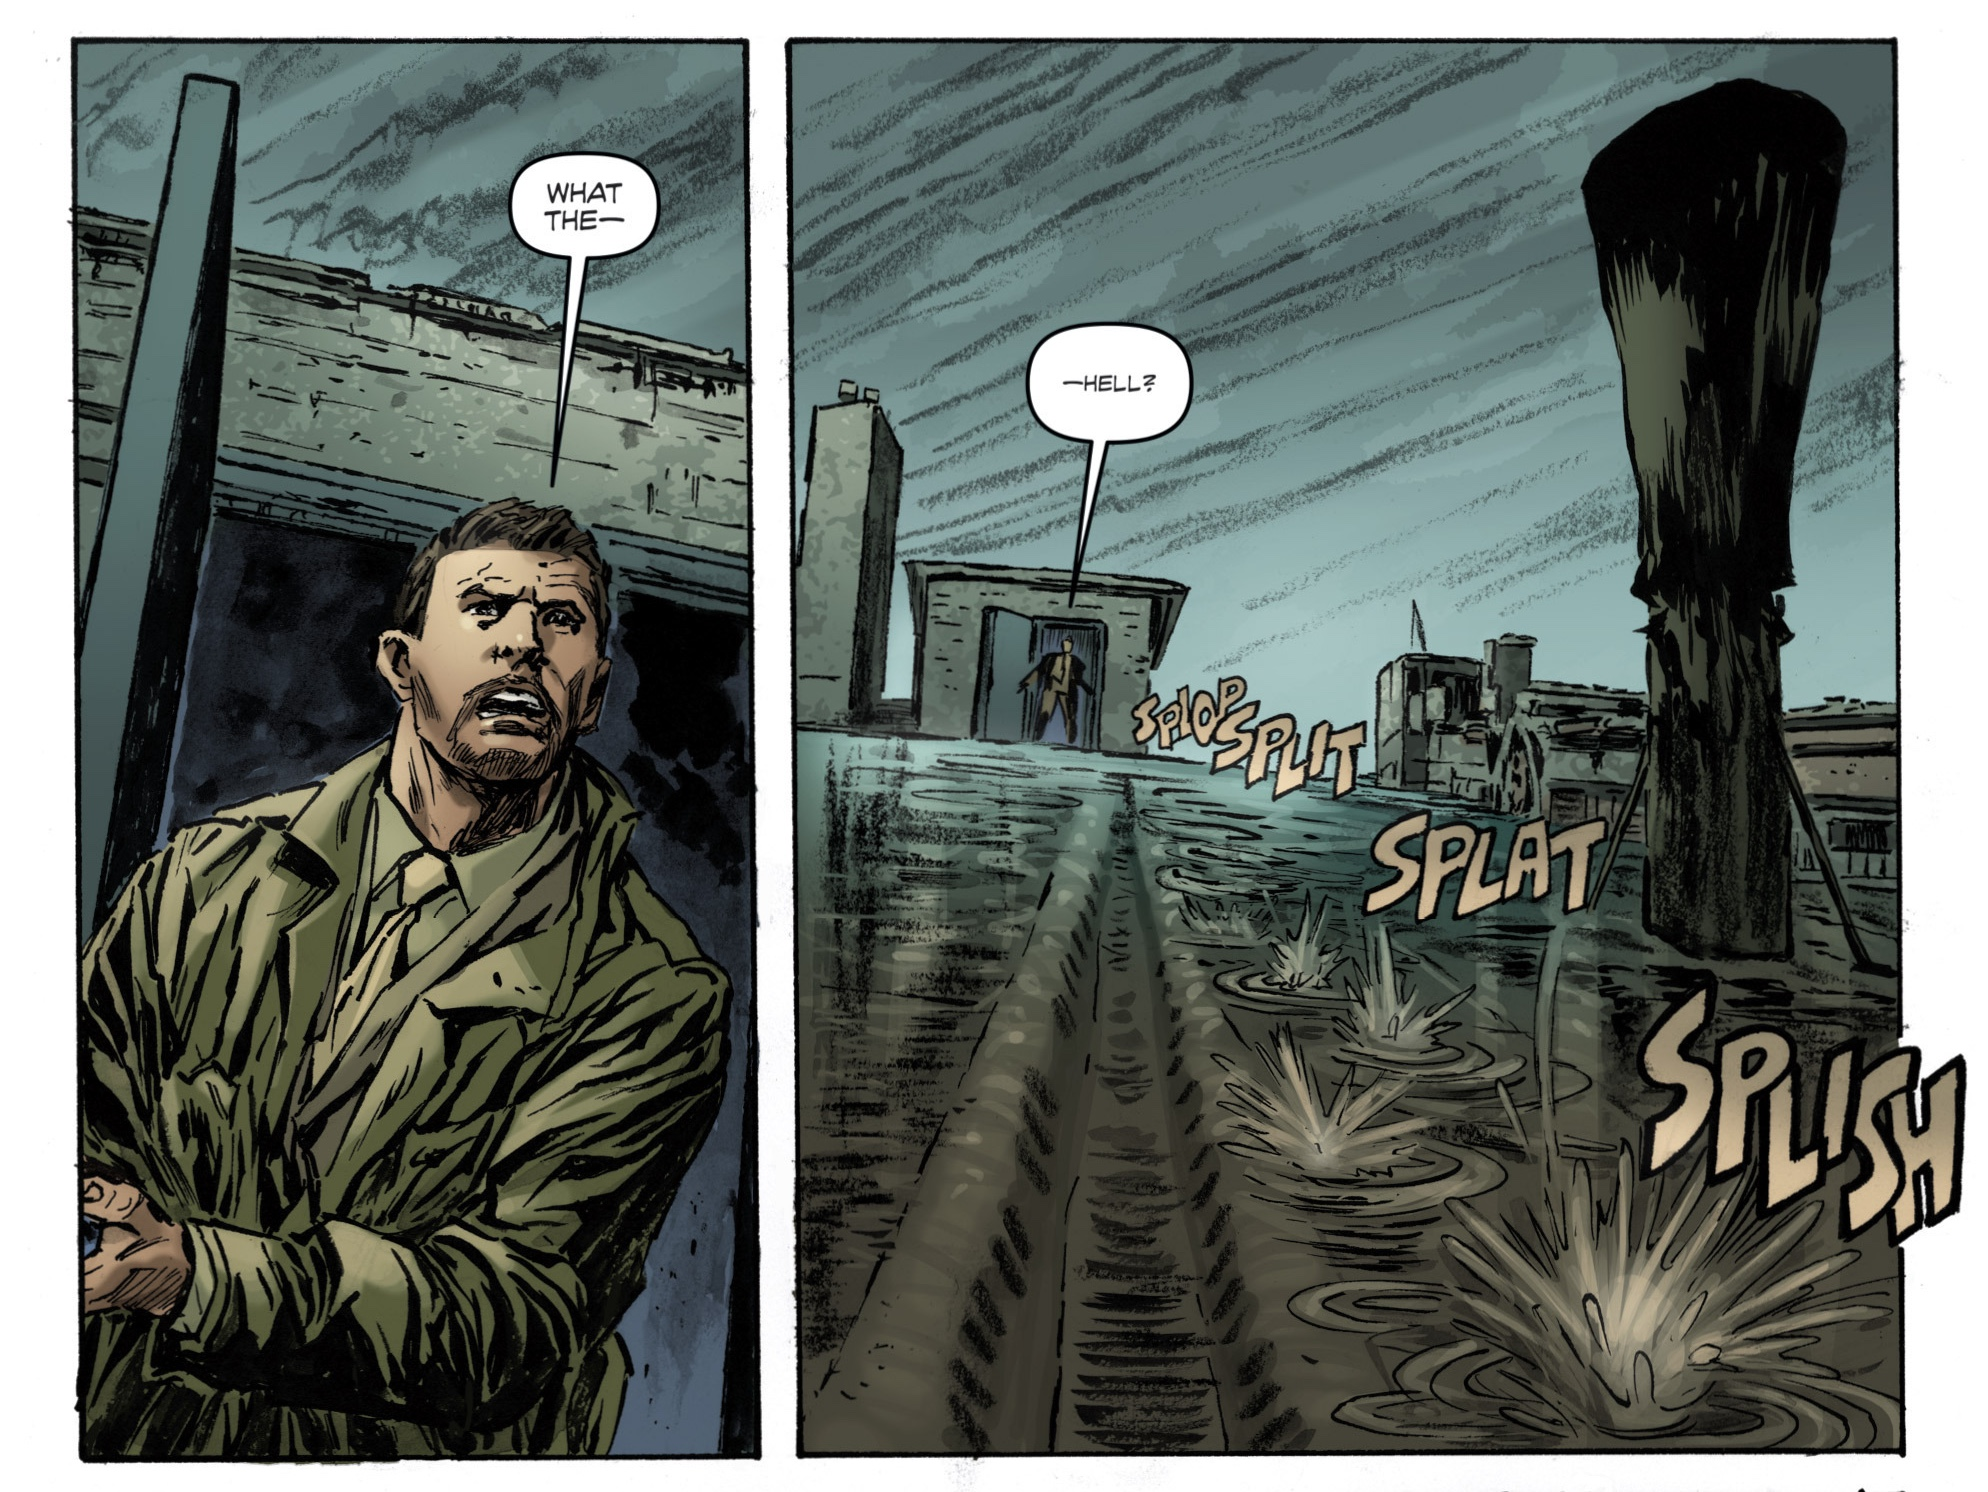 Extrait Archangel #2, page 9, image IDW